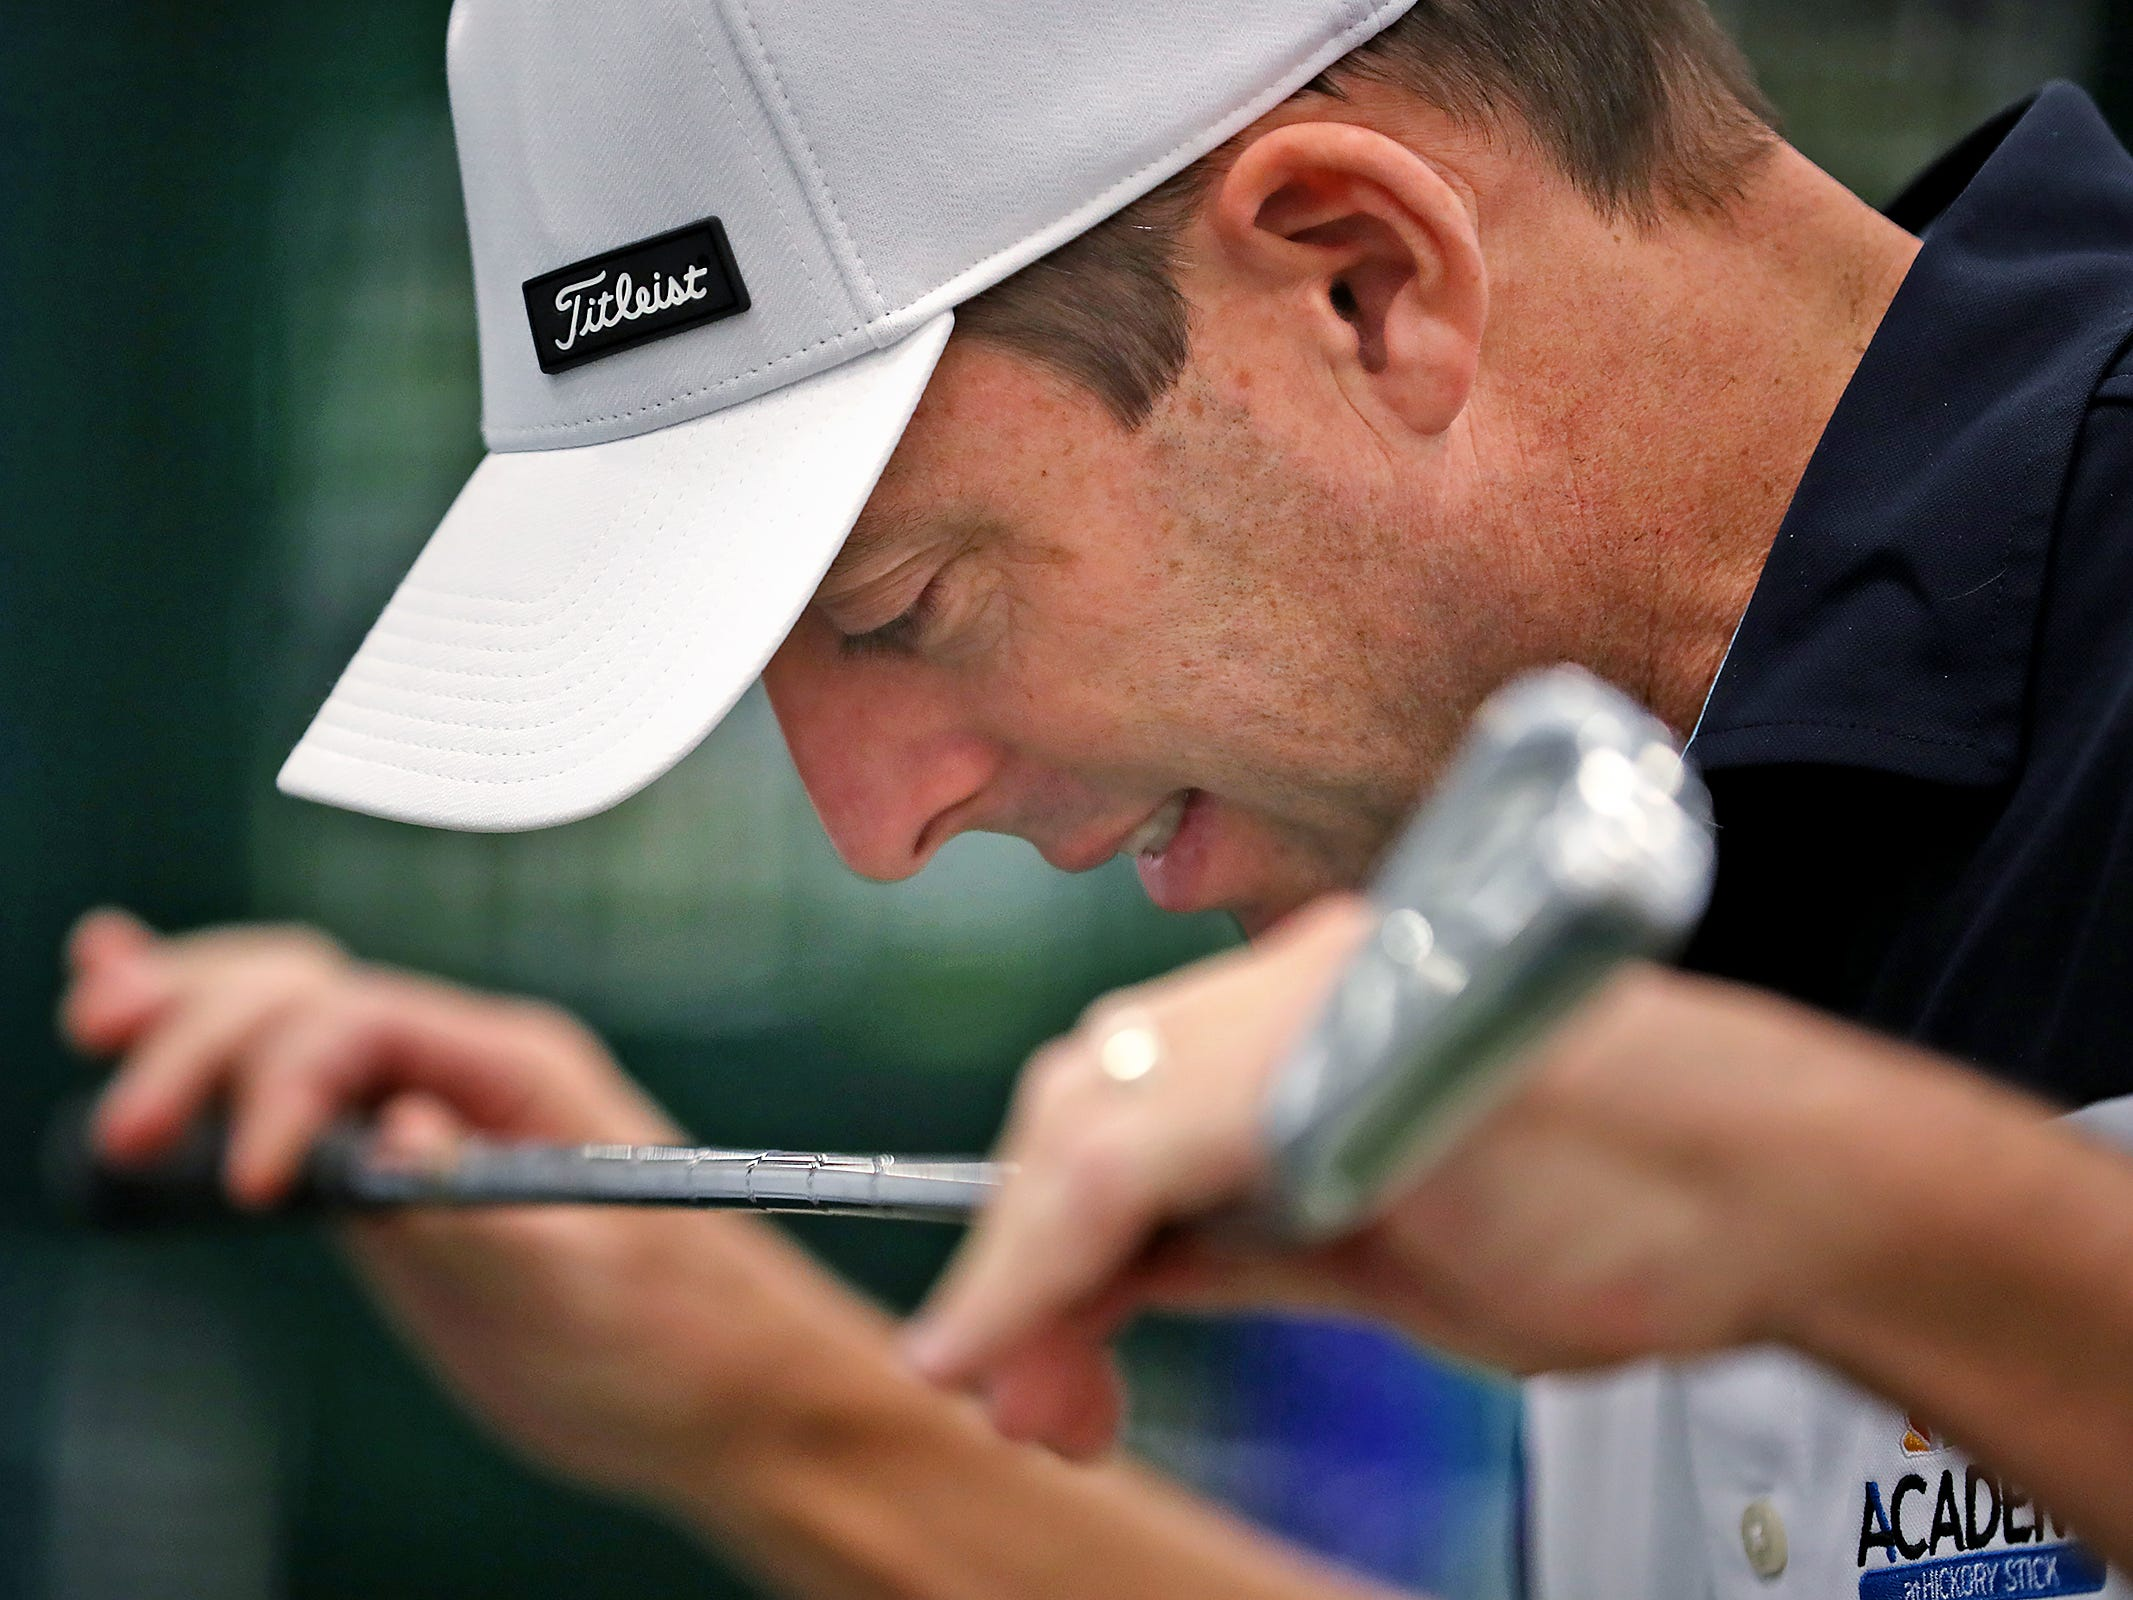 Colby Huffman shows the positioning of the head during a golf swing, as he gives advice to a golfer during the Indy Golf Expo at the Indiana State Fairgrounds, Sunday, Jan. 20, 2019.